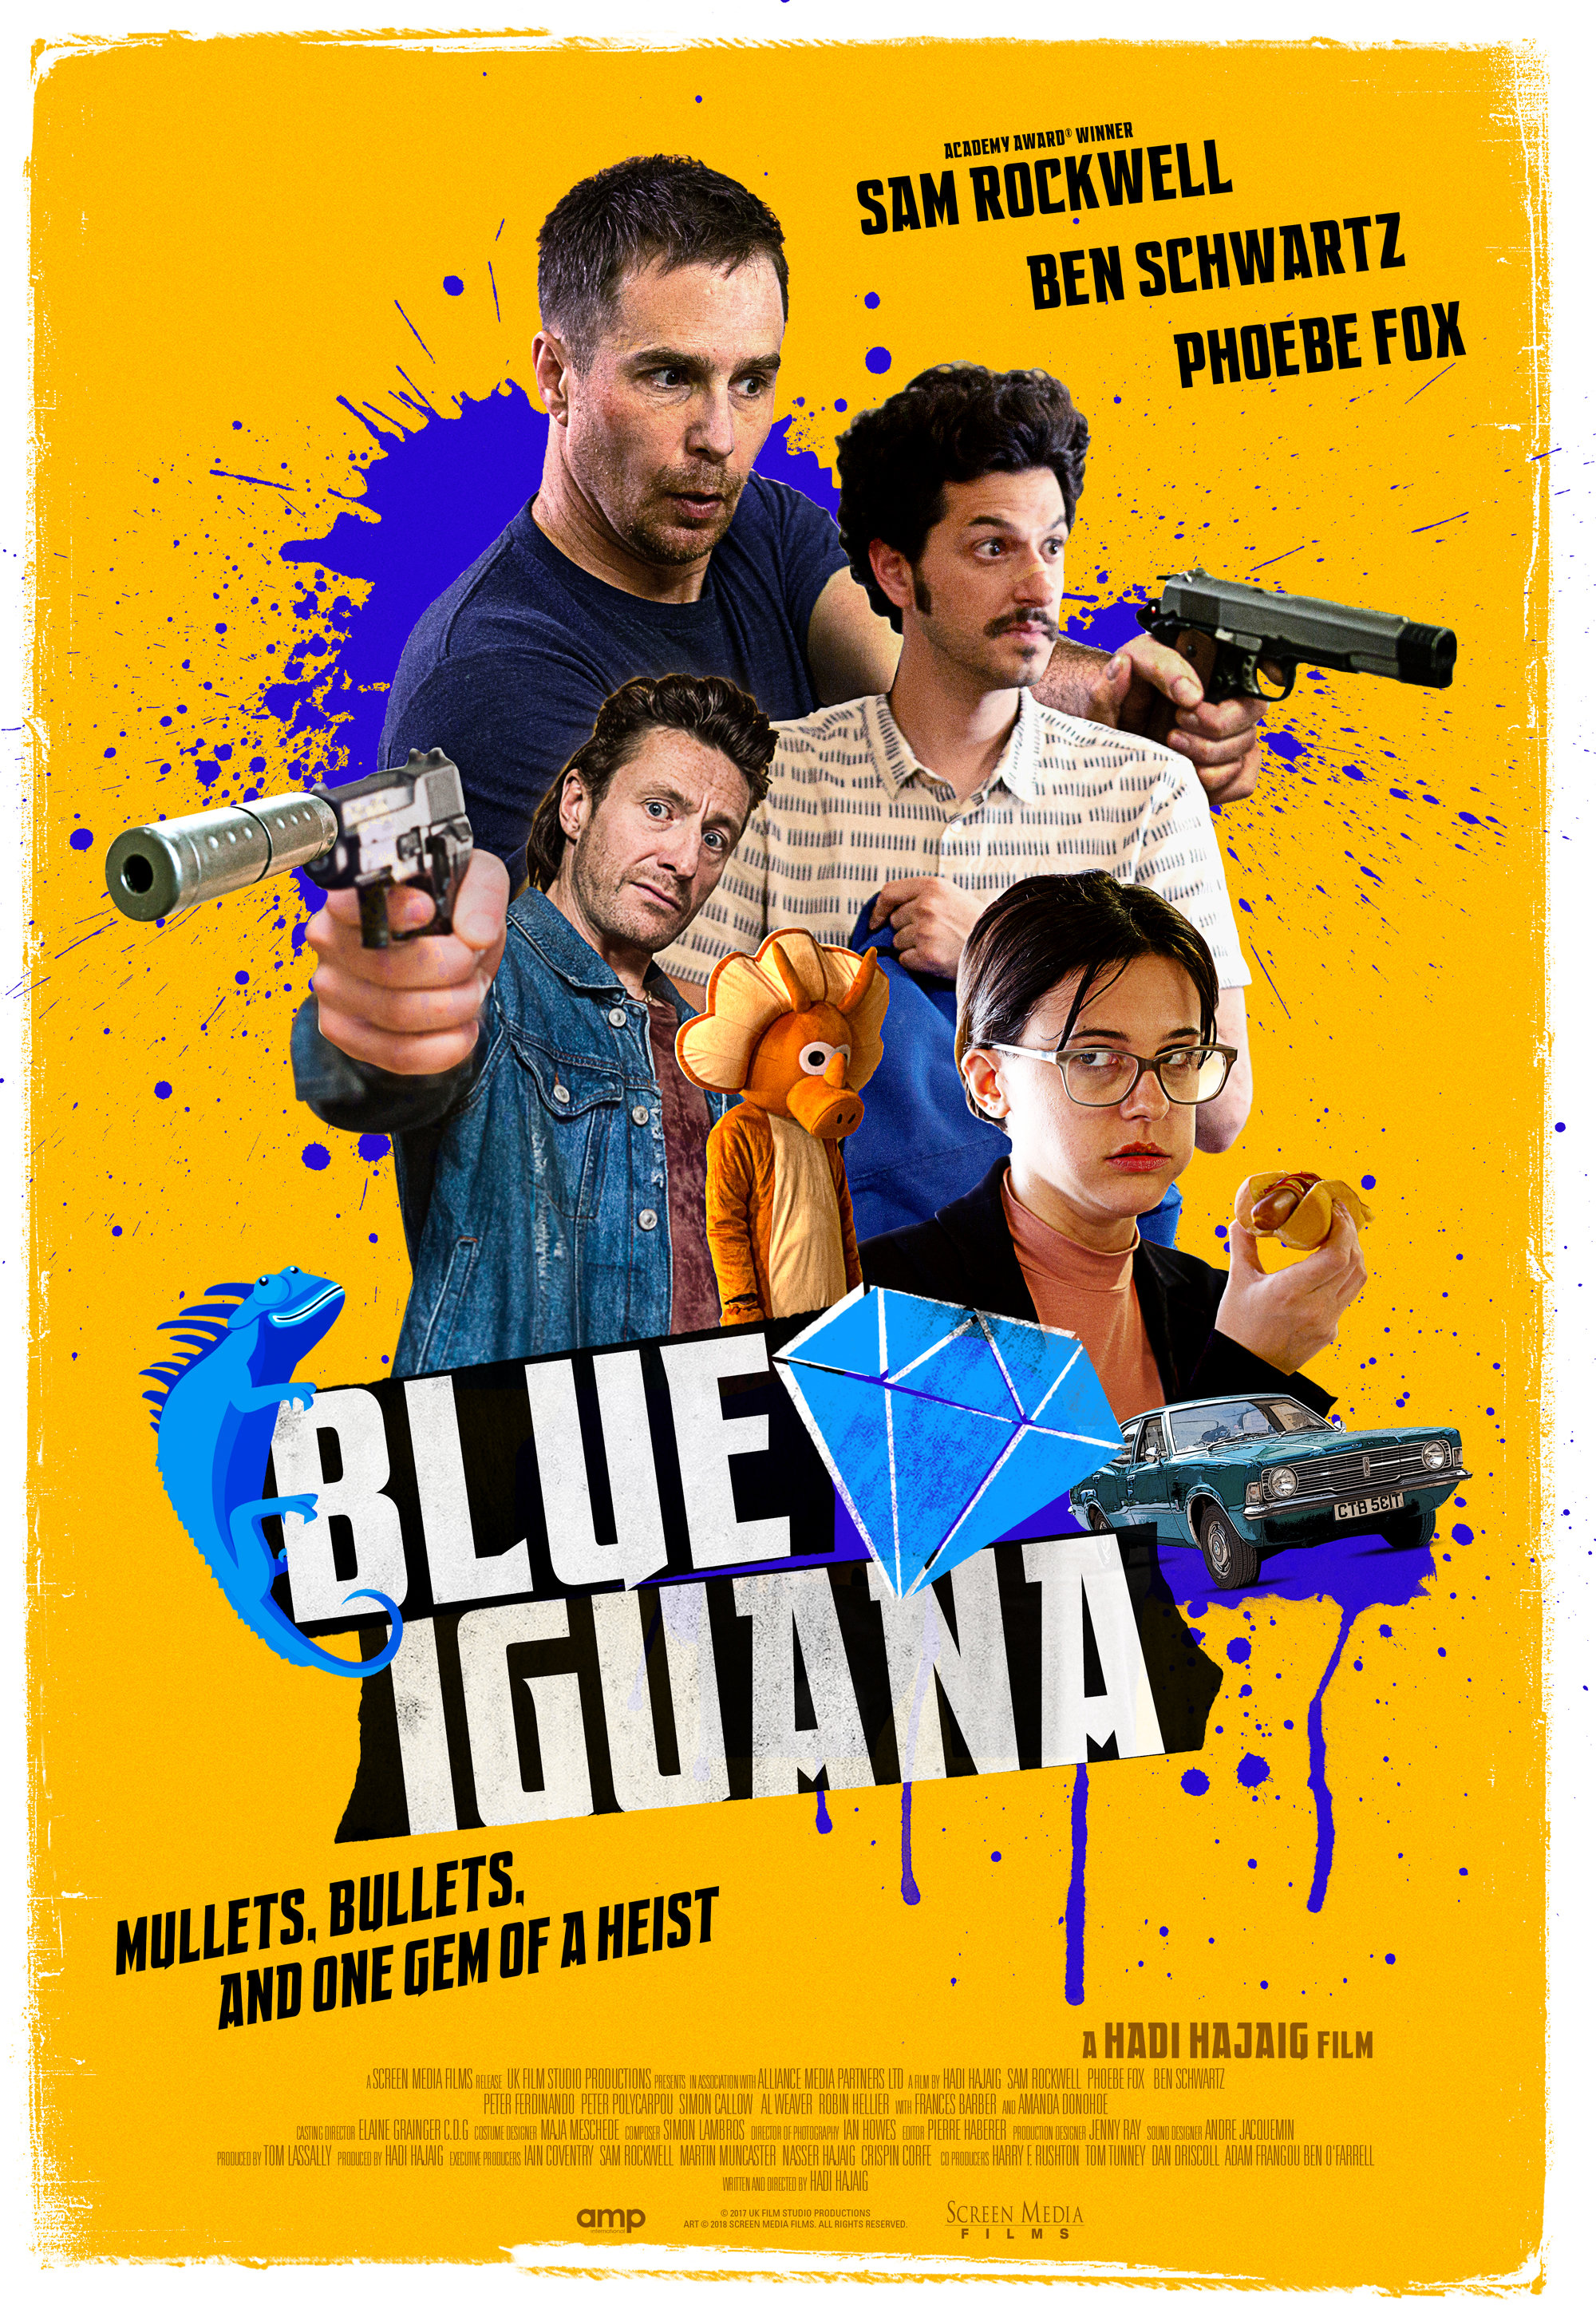 BLUE IGUANA Release Poster